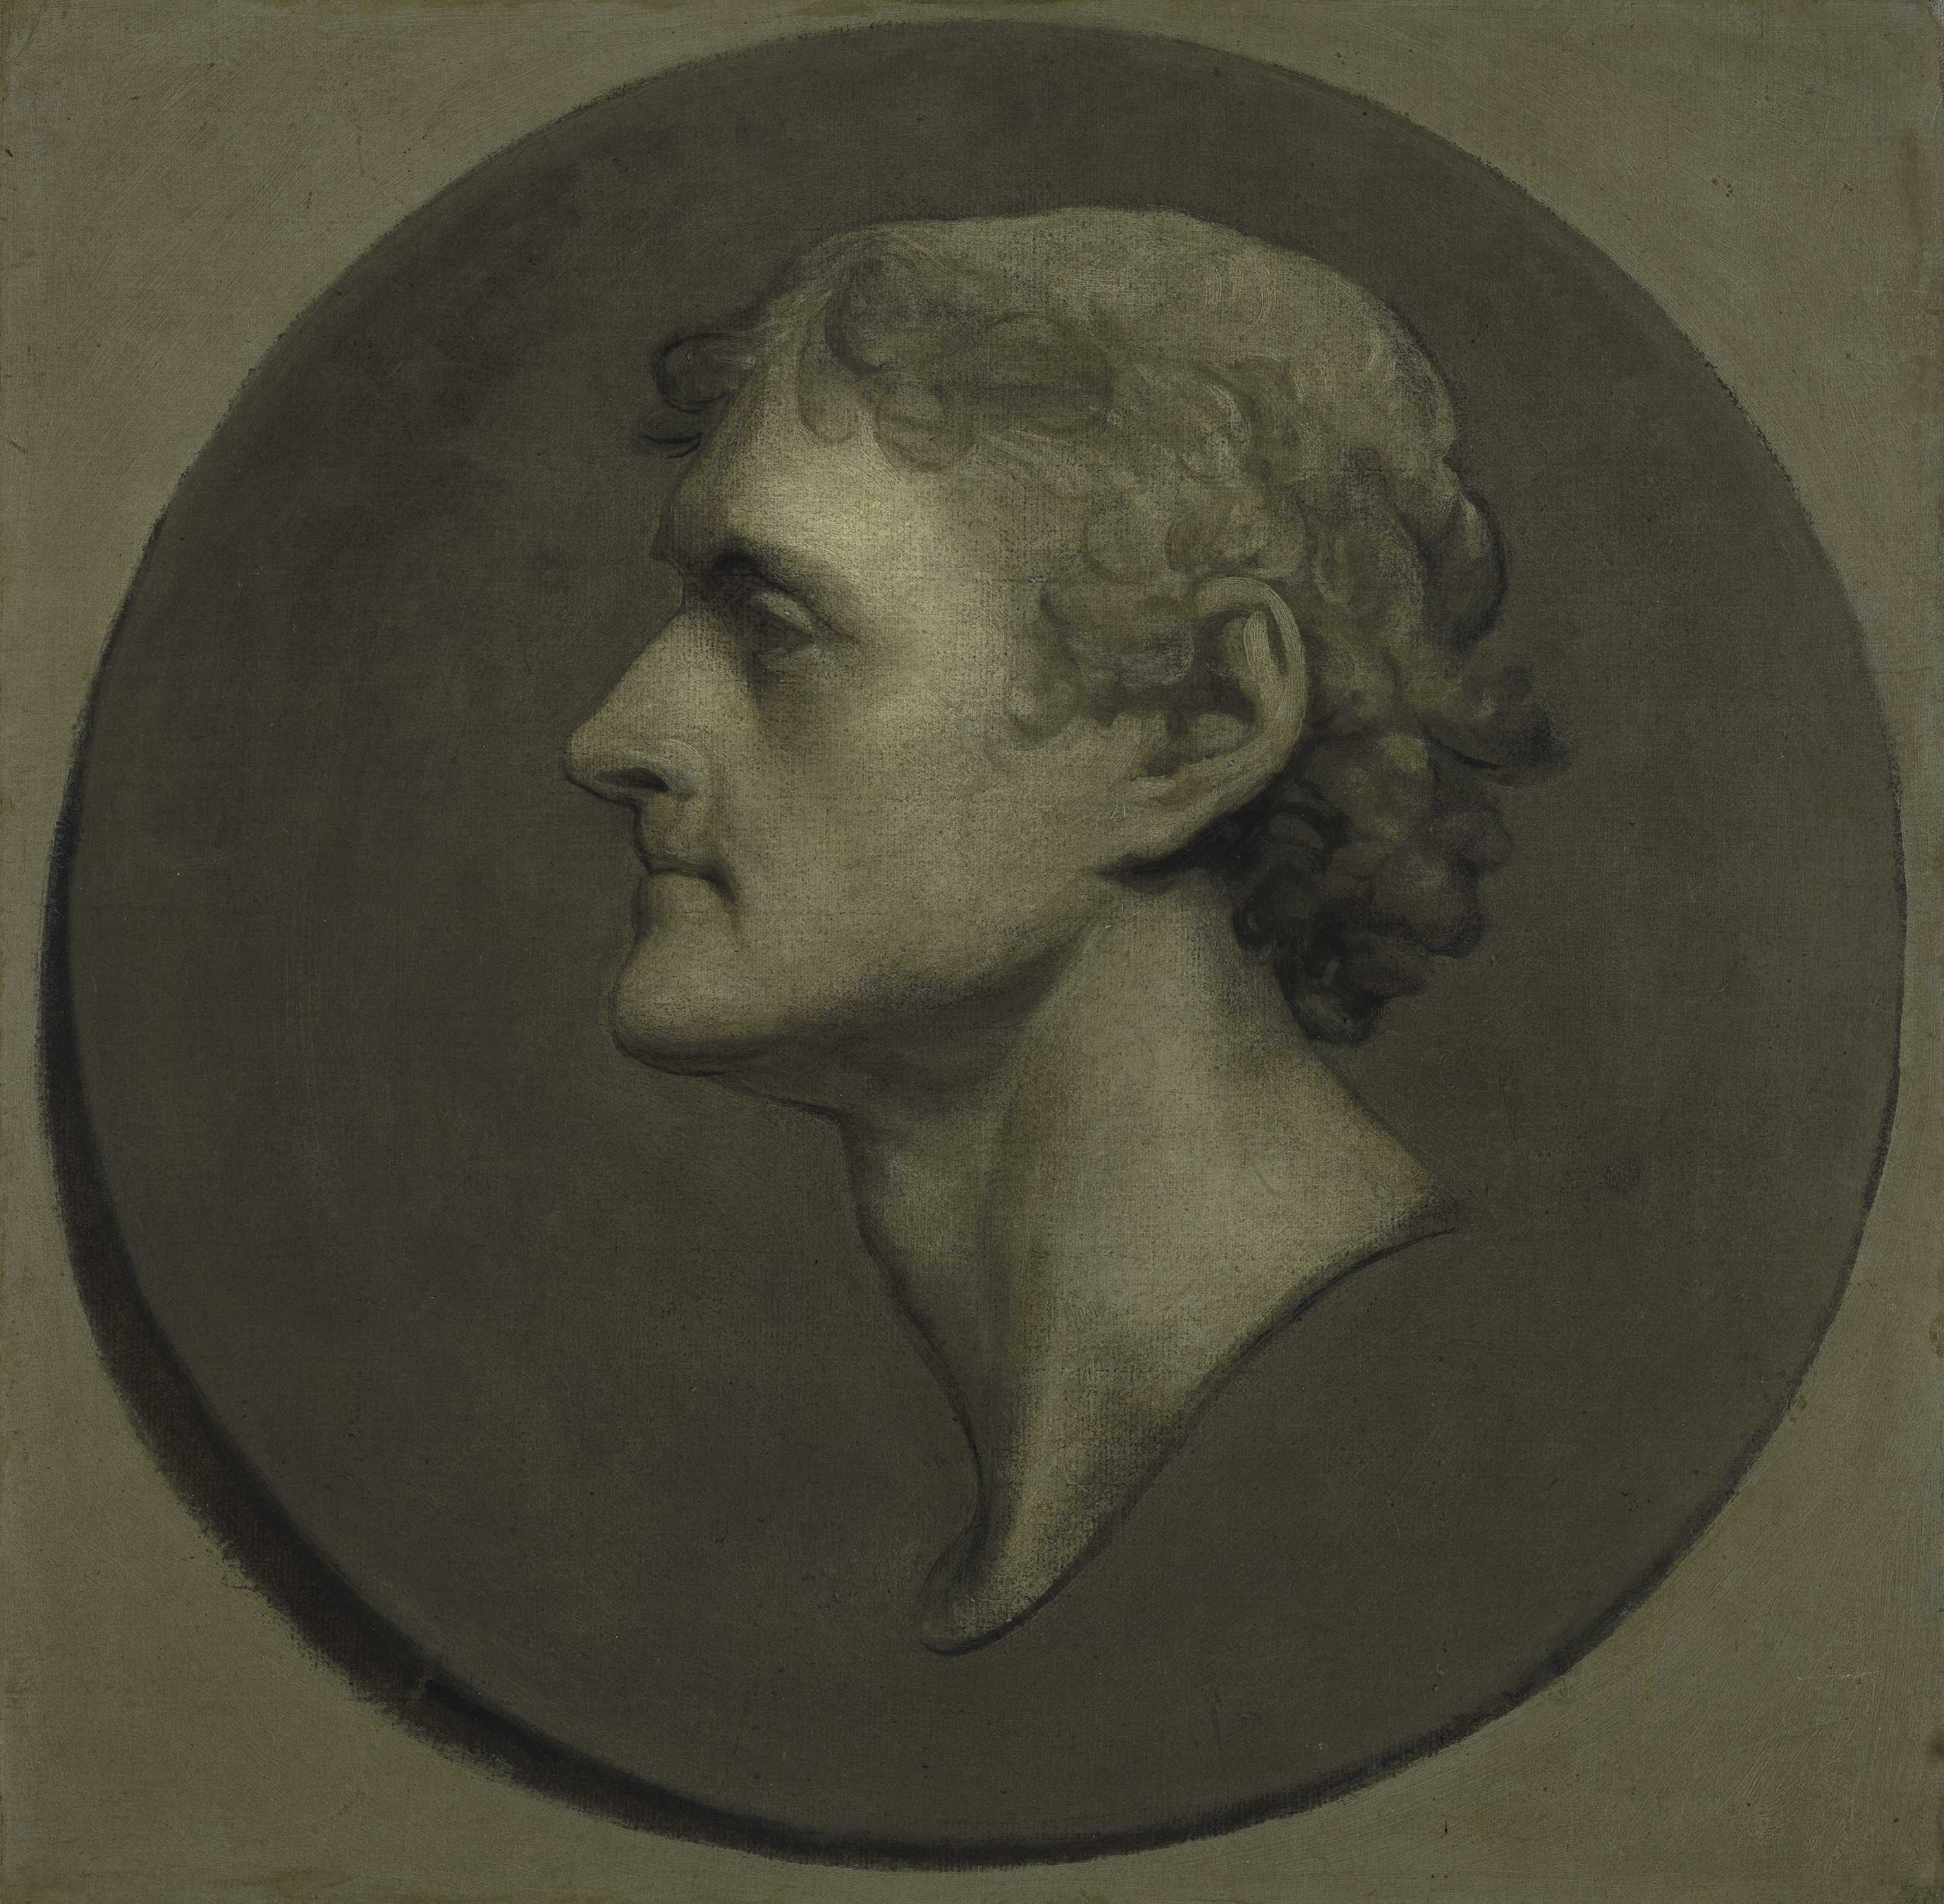 Gilbert Stuart (1755−1825) Thomas Jefferson (The Medallion Portrait), 1805 Grisaille, oil and egg mixture on blue laid paper on canvas Harvard Art Museums/Fogg Museum, Gift of Mrs. T. Jefferson Newbold and family, in memory of Thomas Jefferson Newbold, Class of 1910, 1960.156 Photo: Imaging Department © President and Fellows of Harvard College